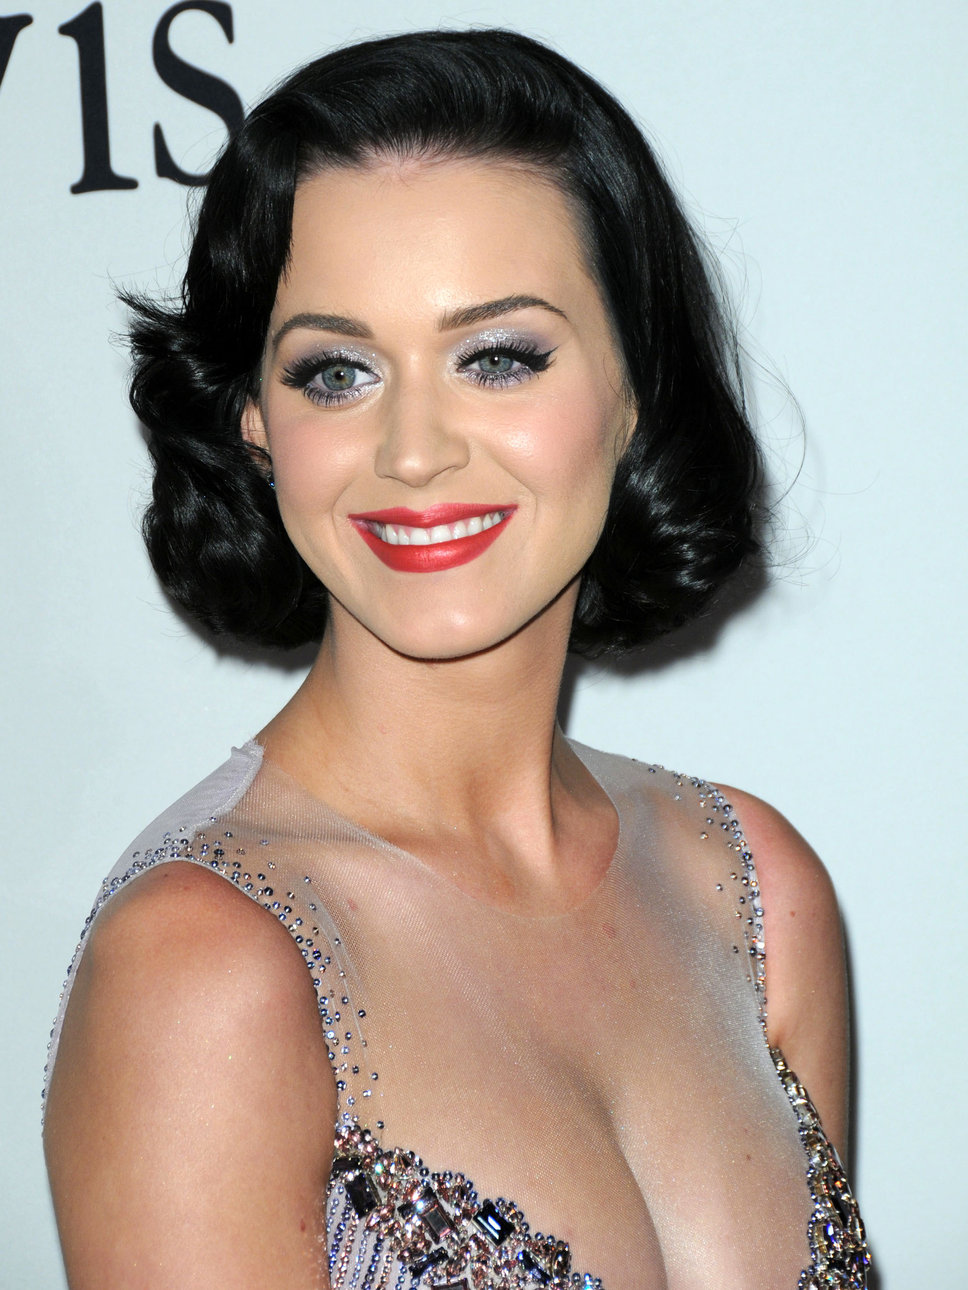 Katy Perry Biography - Pictures And Biography